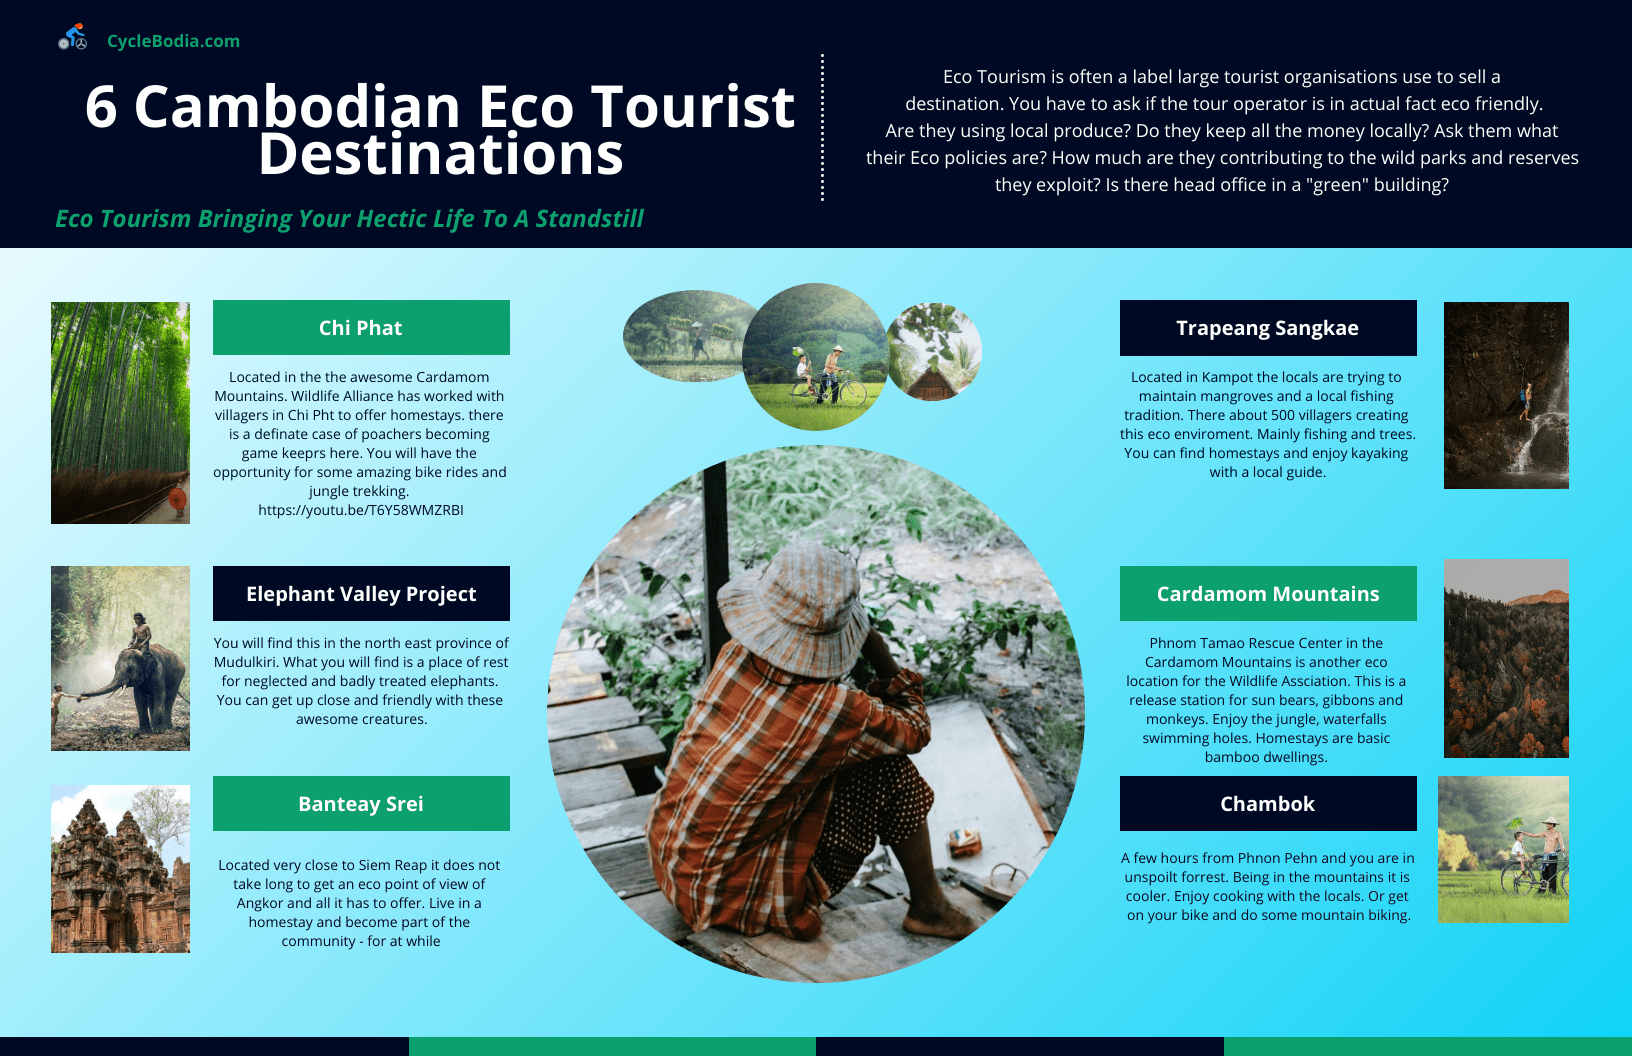 6 Cambodian eco tour destinations